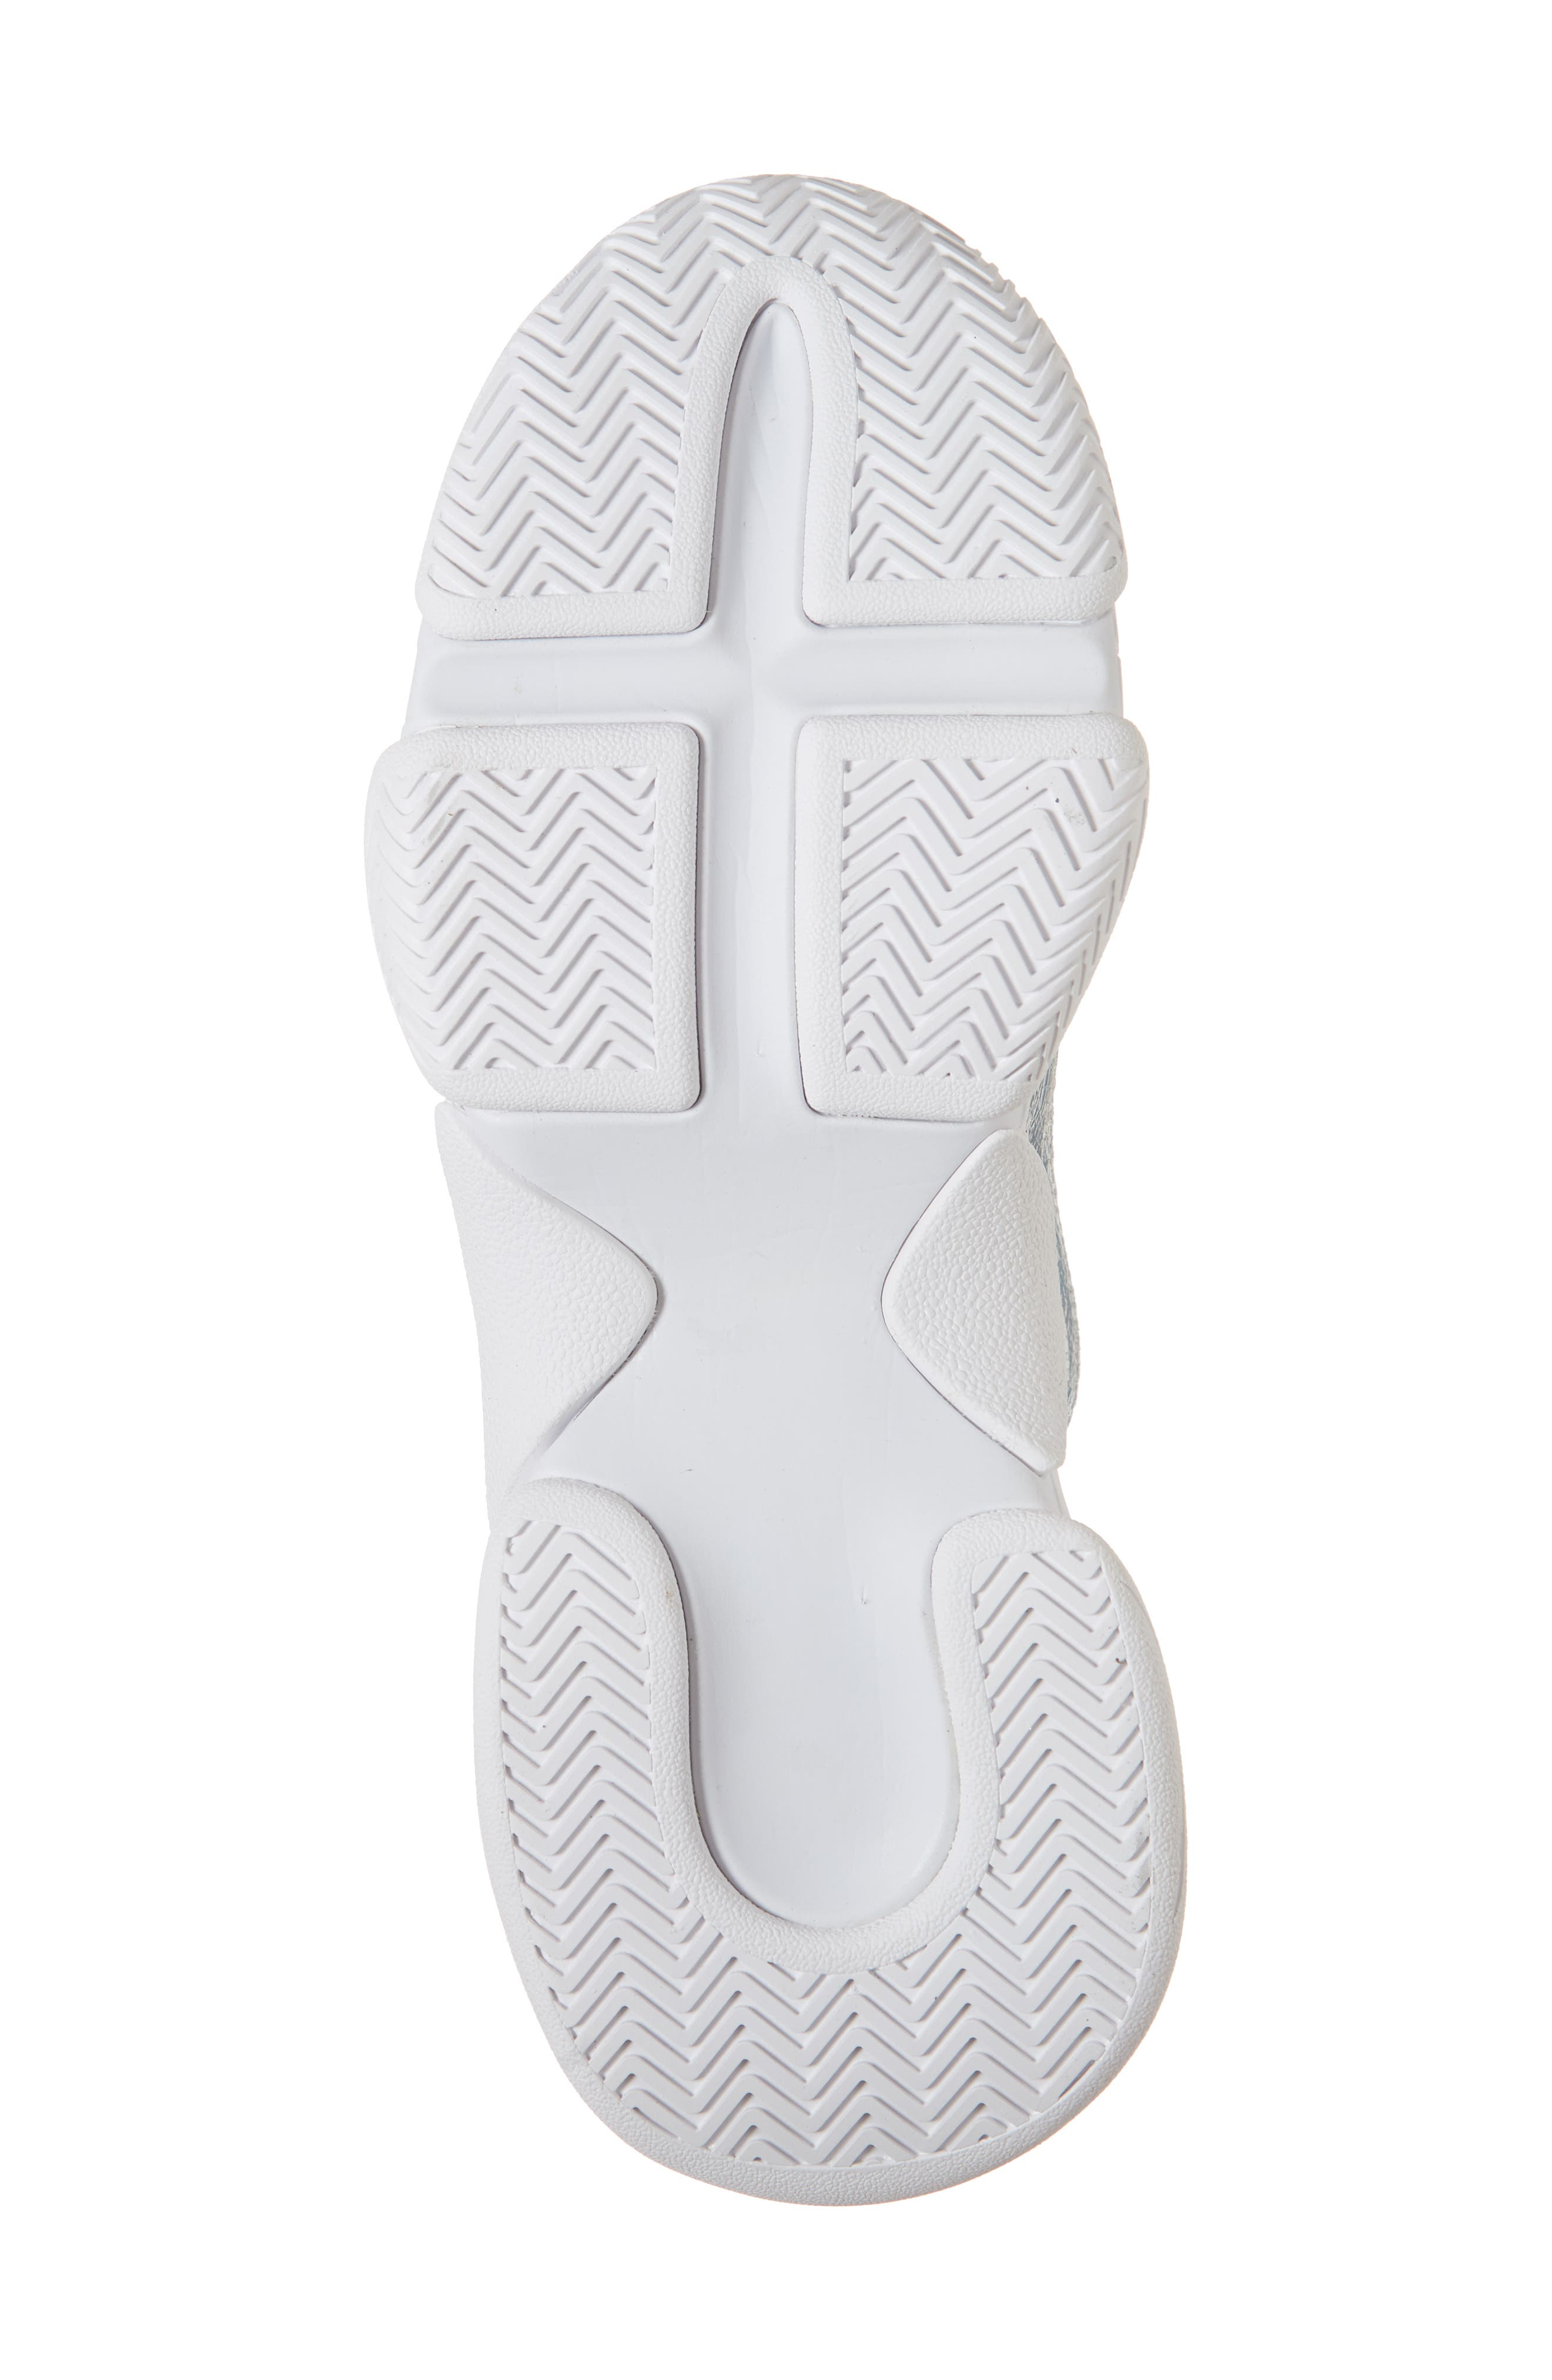 Hotspot Lace-Up Sneaker,                             Alternate thumbnail 6, color,                             SILVER CRINKLE